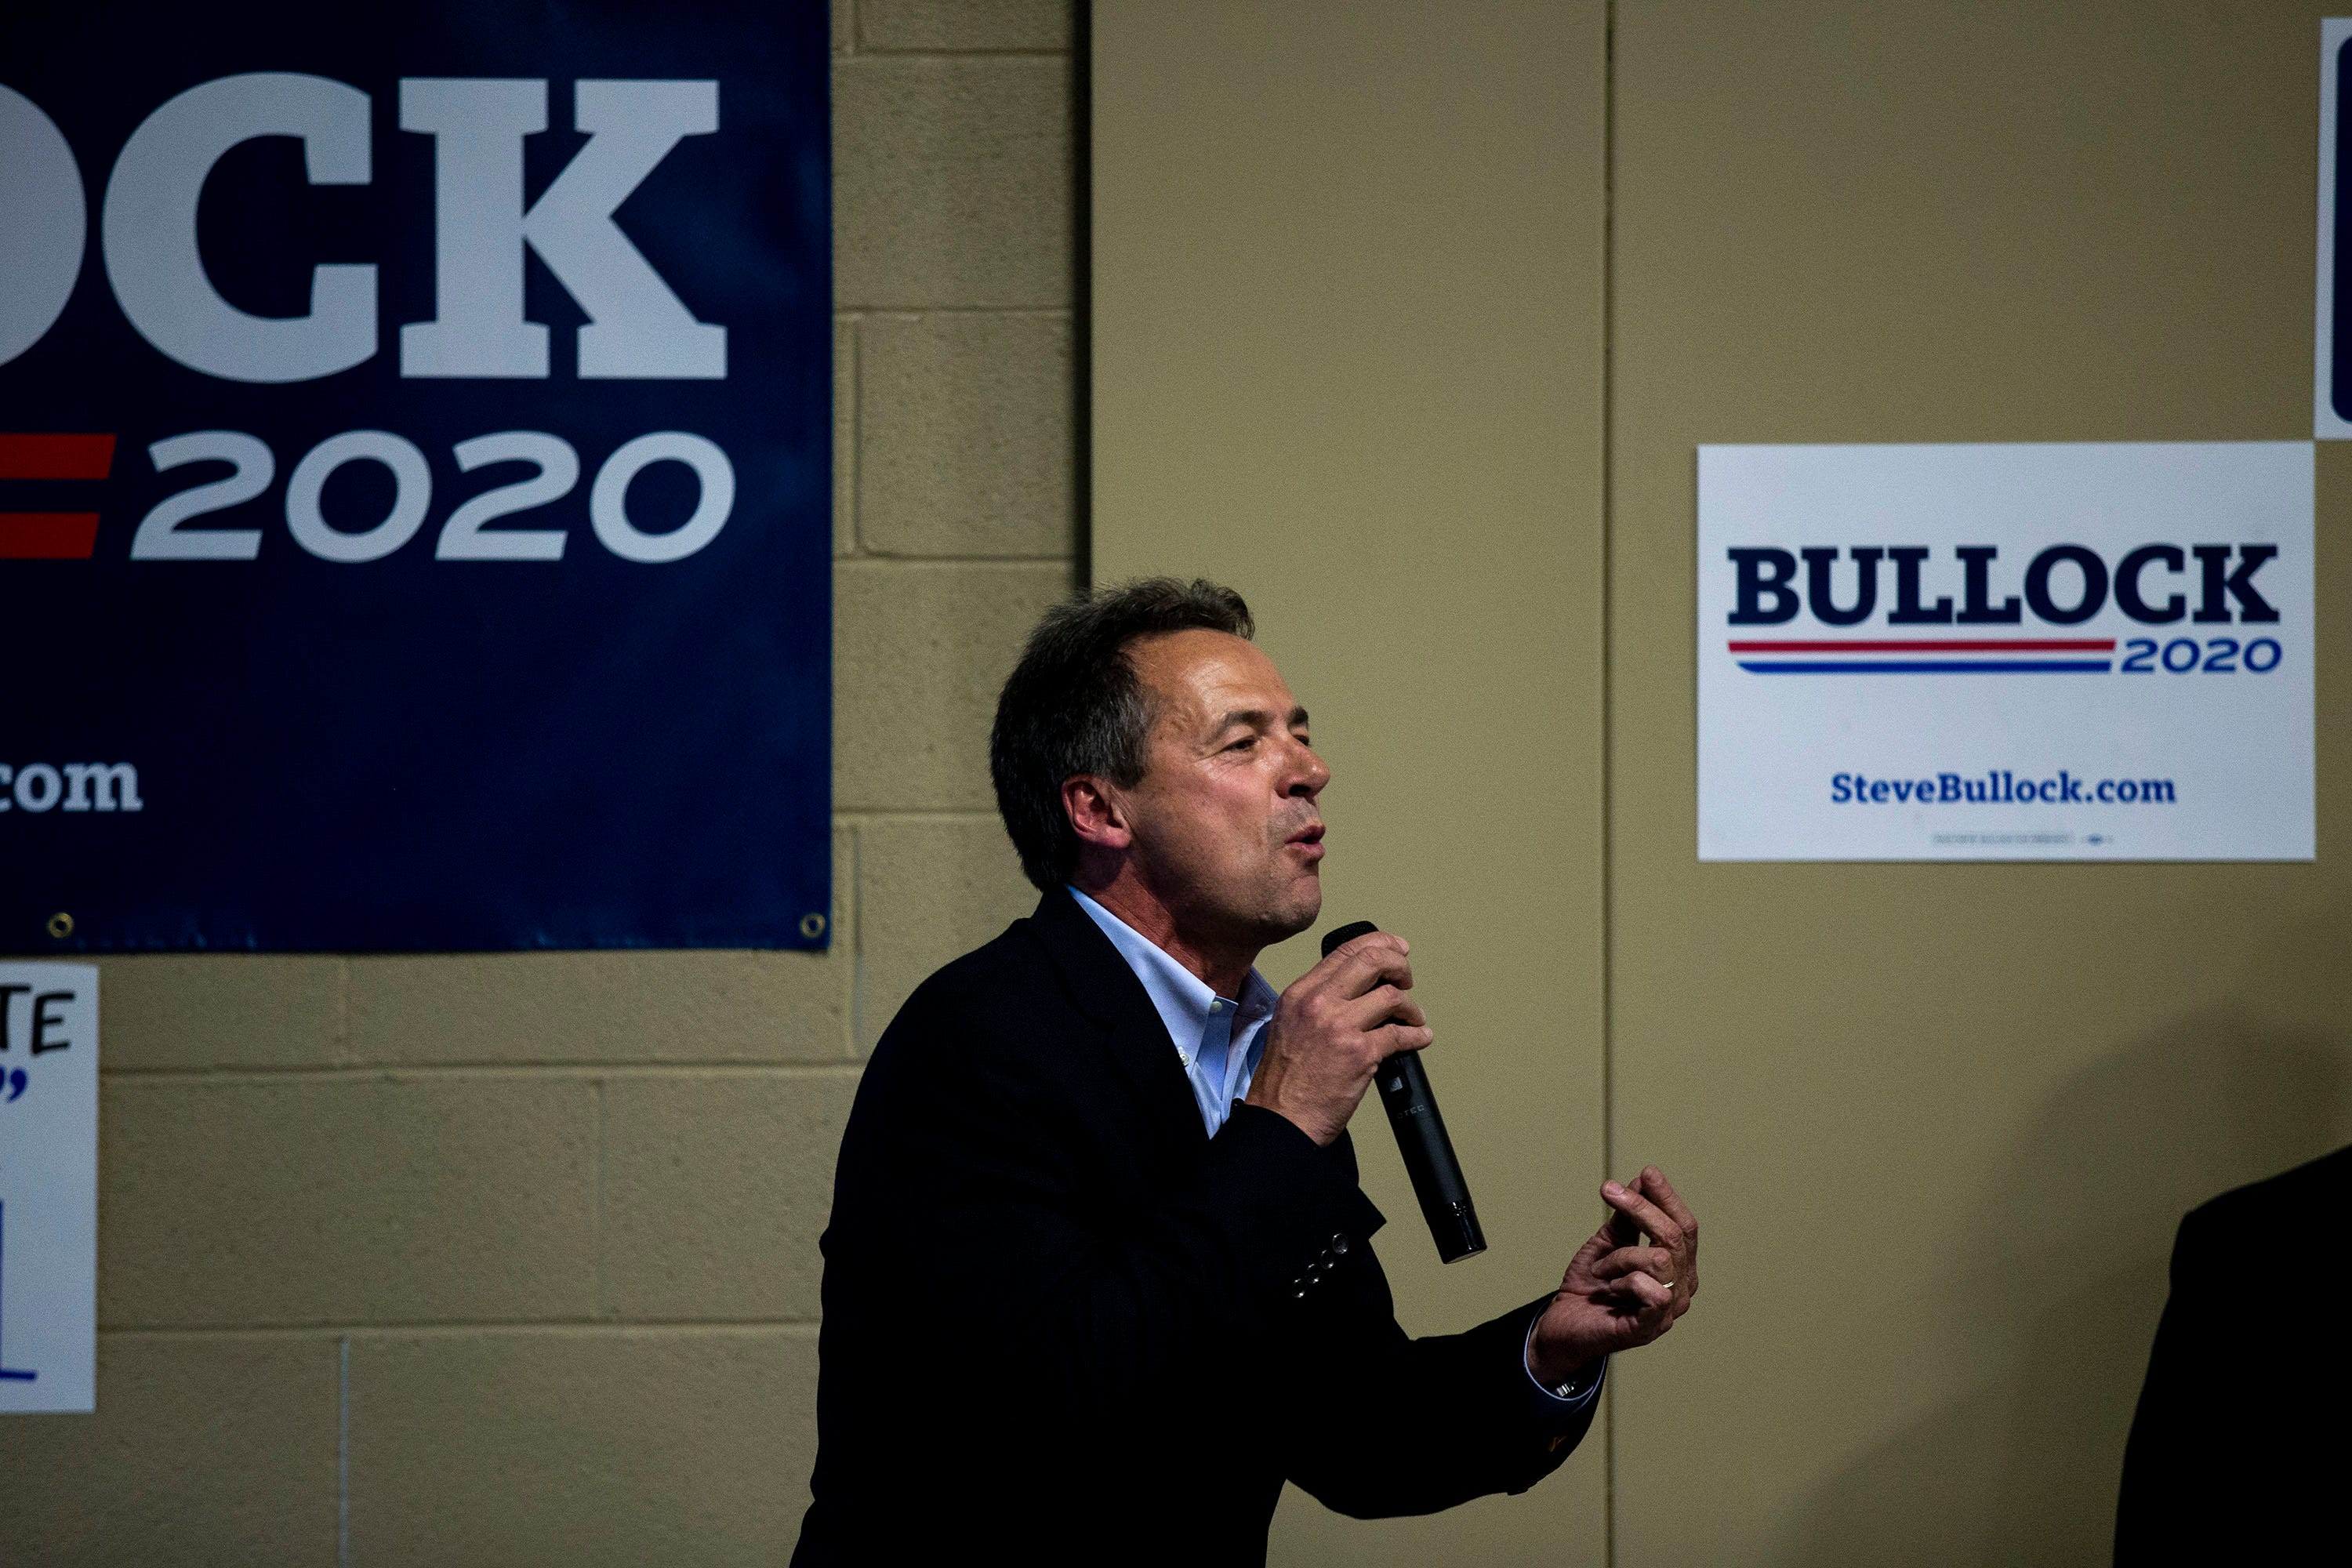 Steve Bullock explains how he got elected in a state that also elected Donald Trump